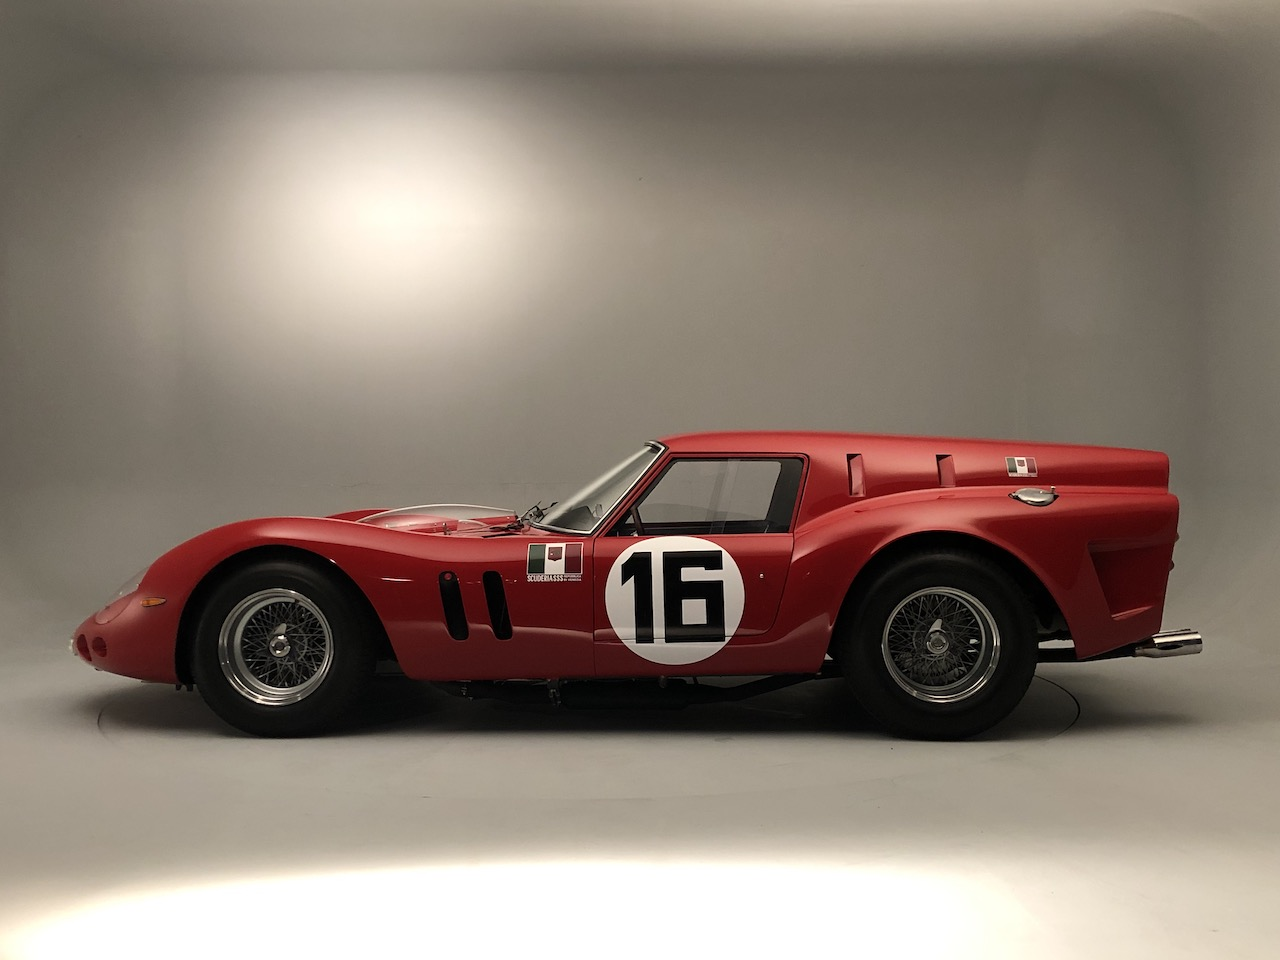 100 of the worlds finest classics to star at Auto Royale